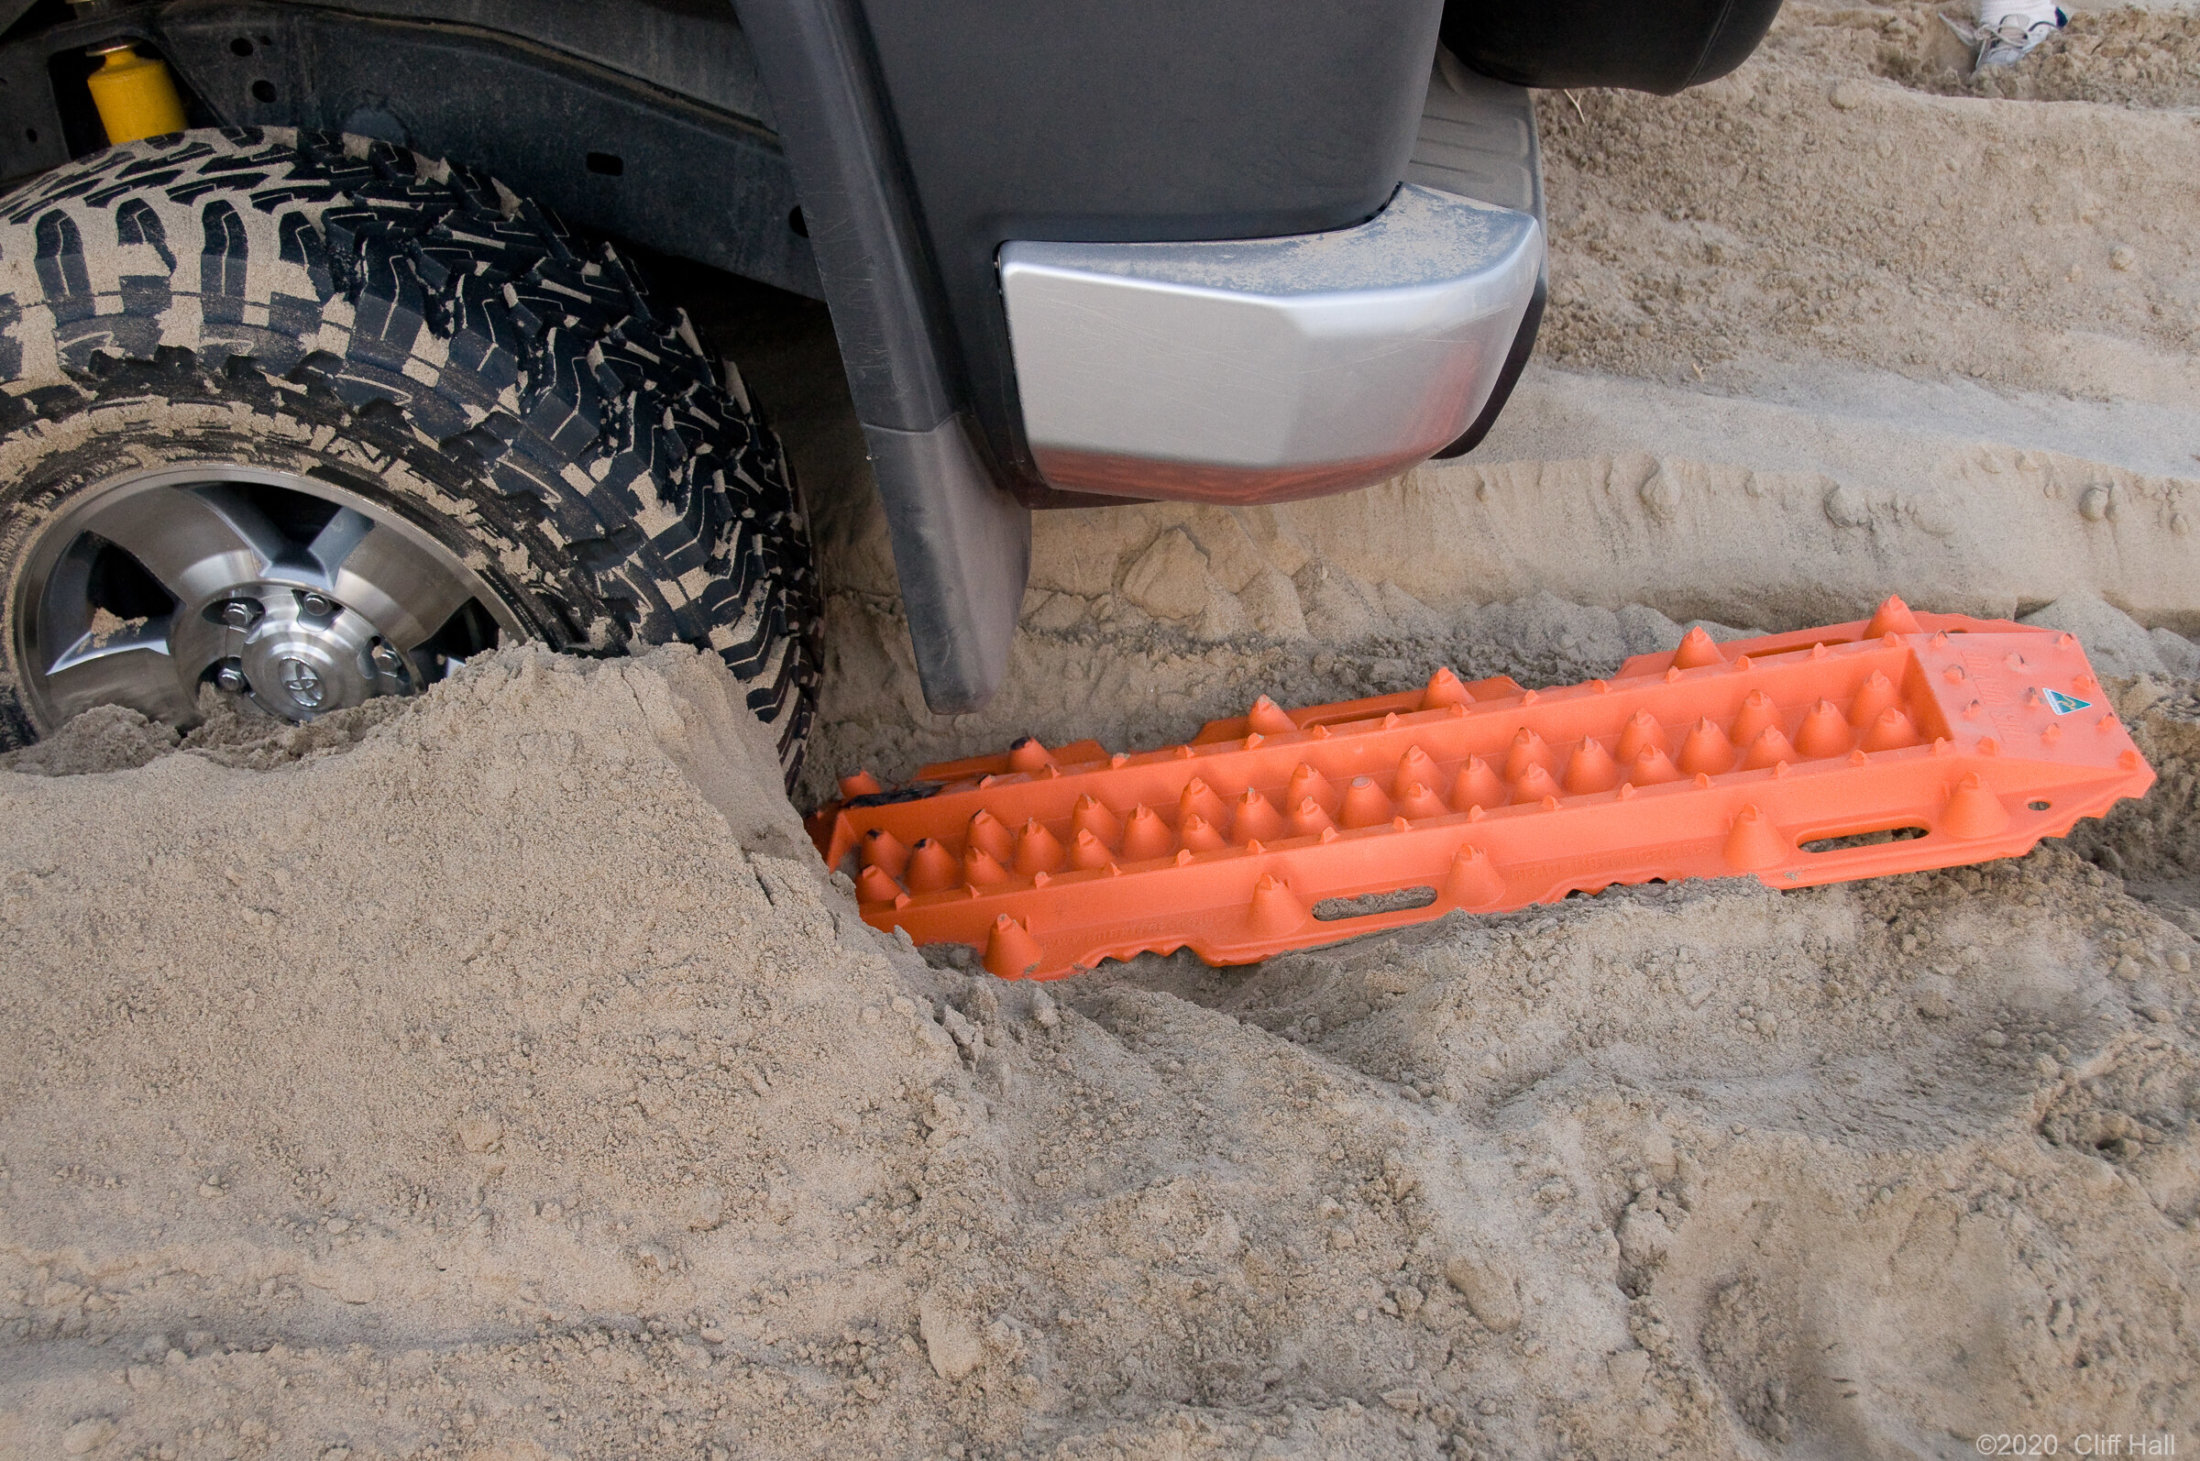 FJ stuck in the sand, so we learn about MaxTrax